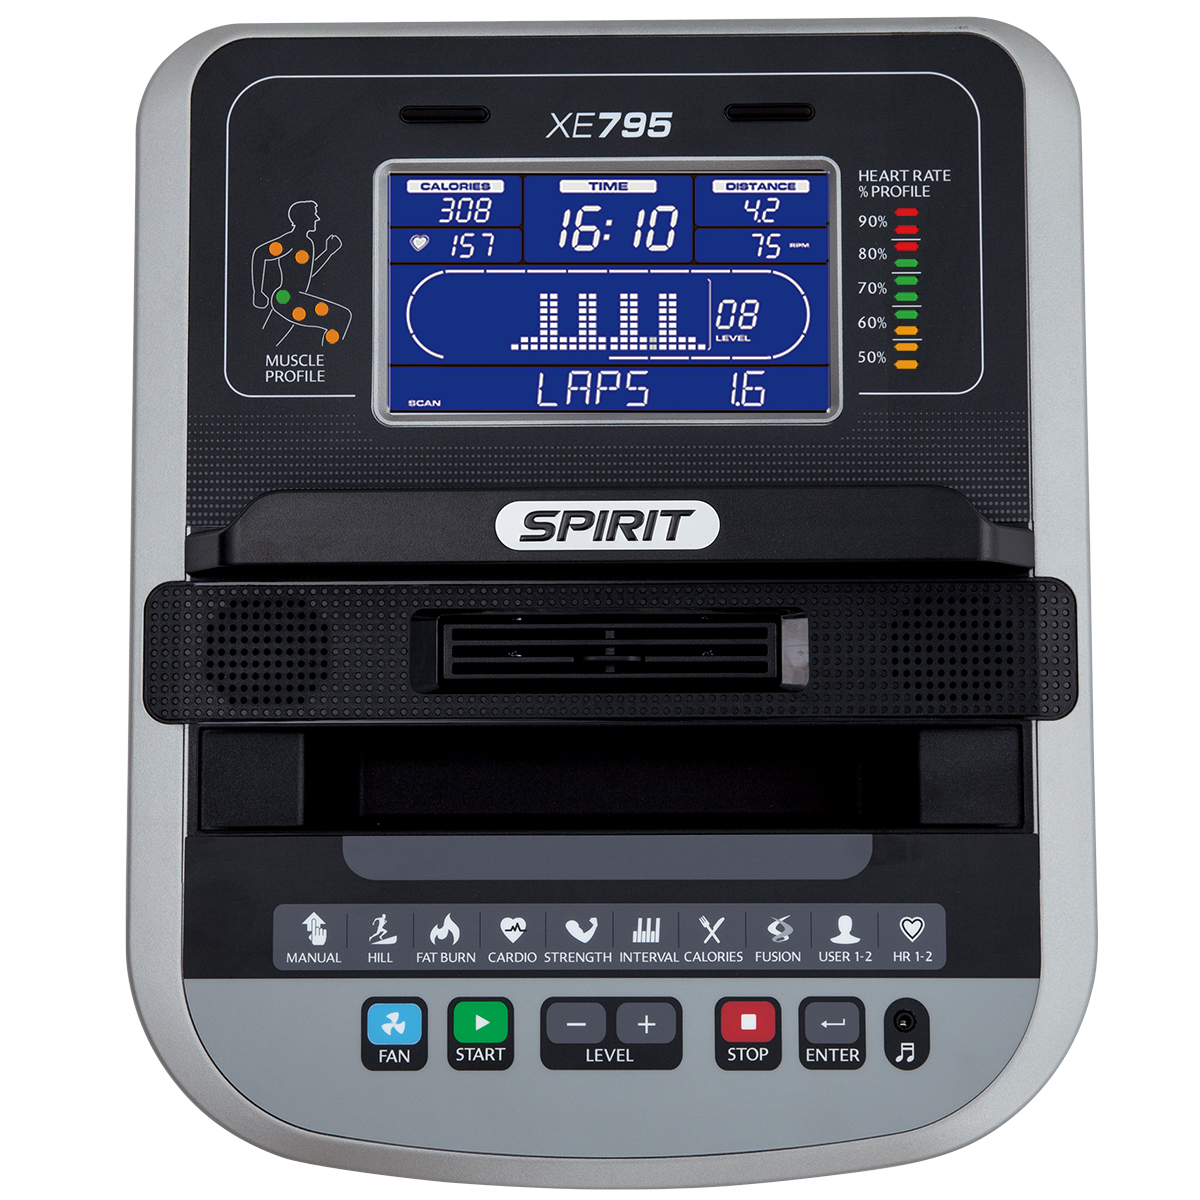 Spirit Fitness XE795 elliptical monitor showing blue LCD screen and control buttons.